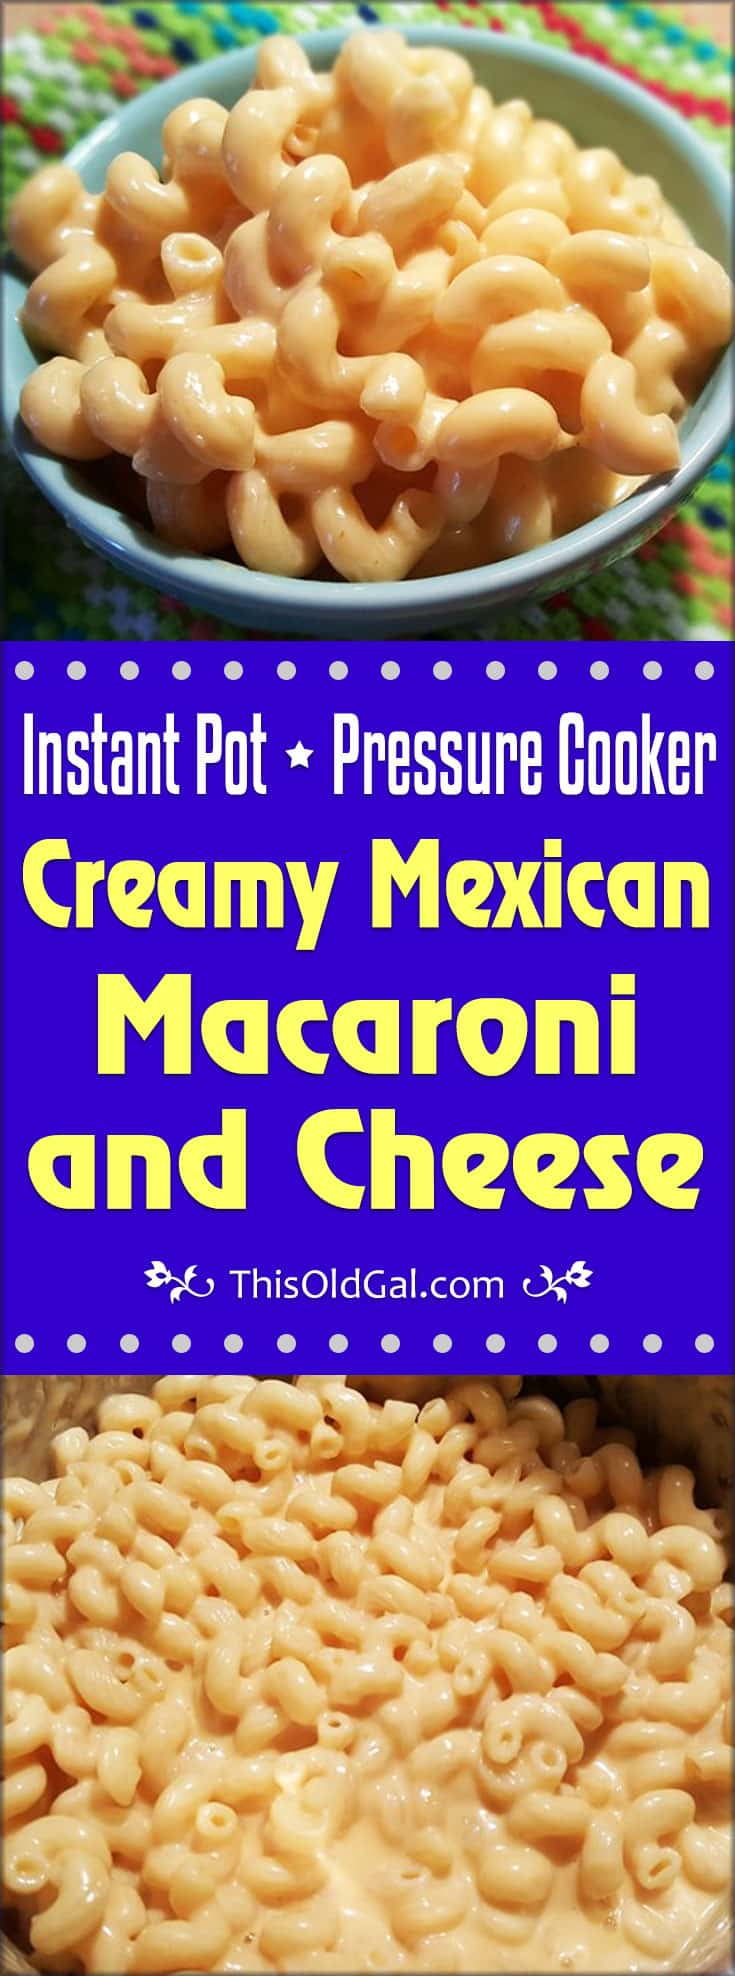 Pressure Cooker Creamy Mexican Macaroni and Cheese